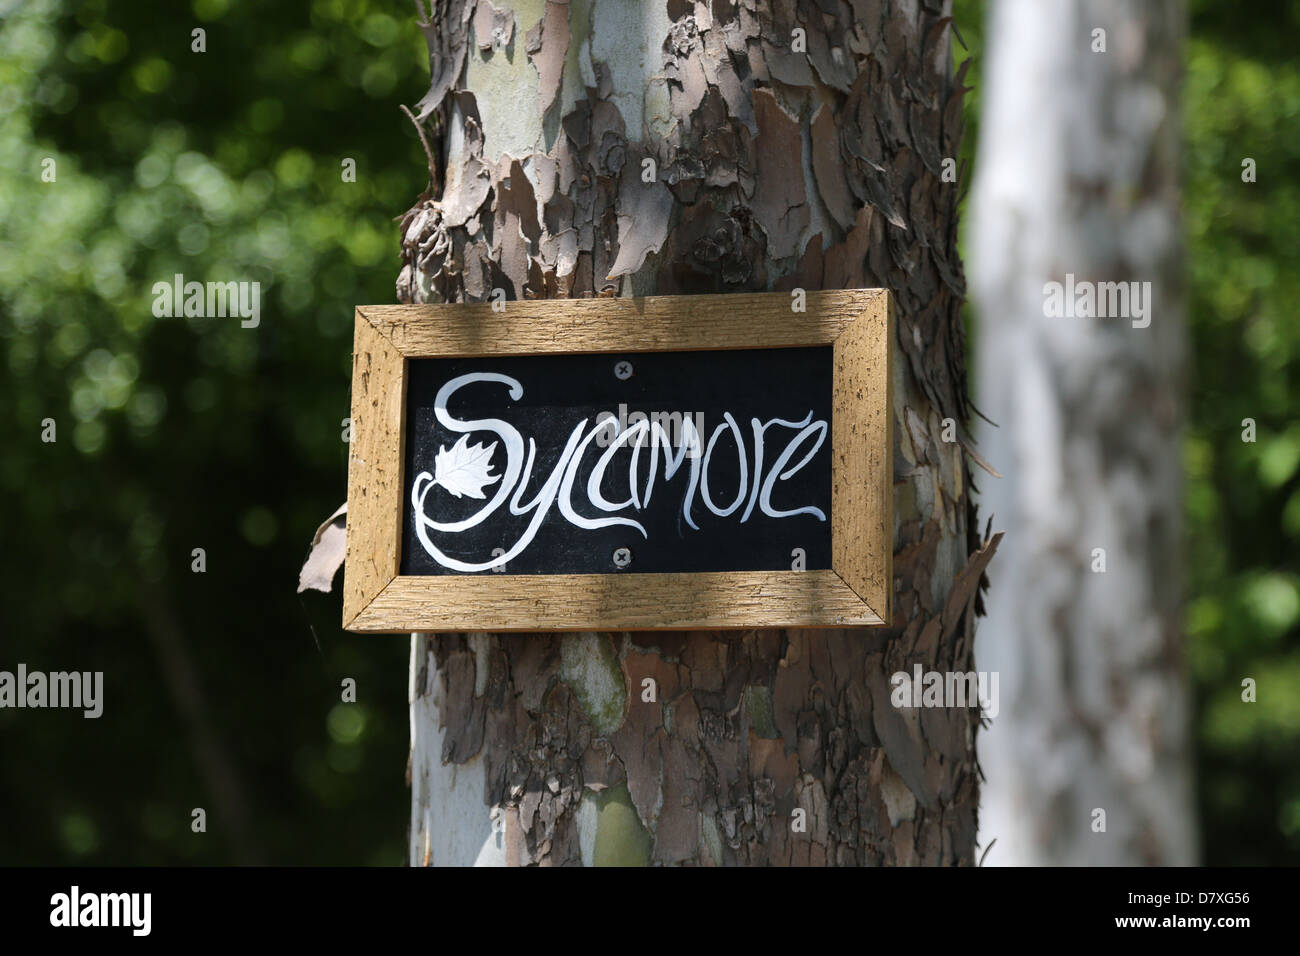 The trunk of a sycamore tree labeled with an identifying sign. - Stock Image